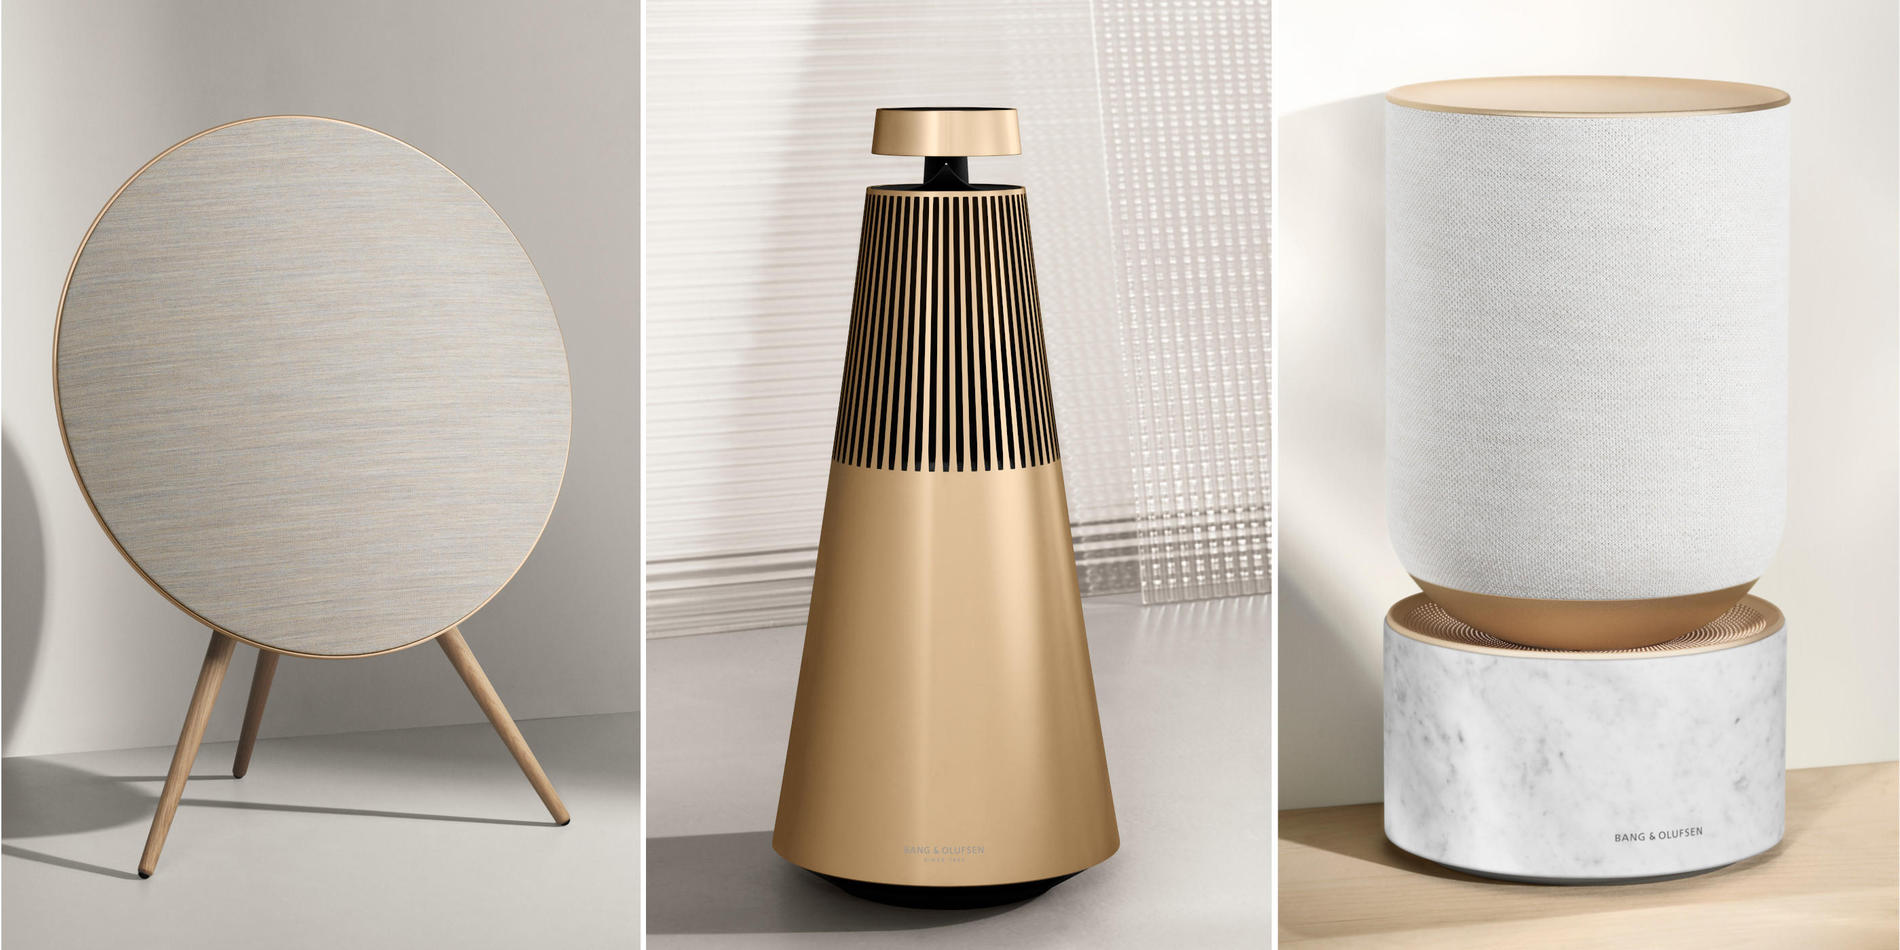 Golden headphones and speakers by Bang & Olufsen